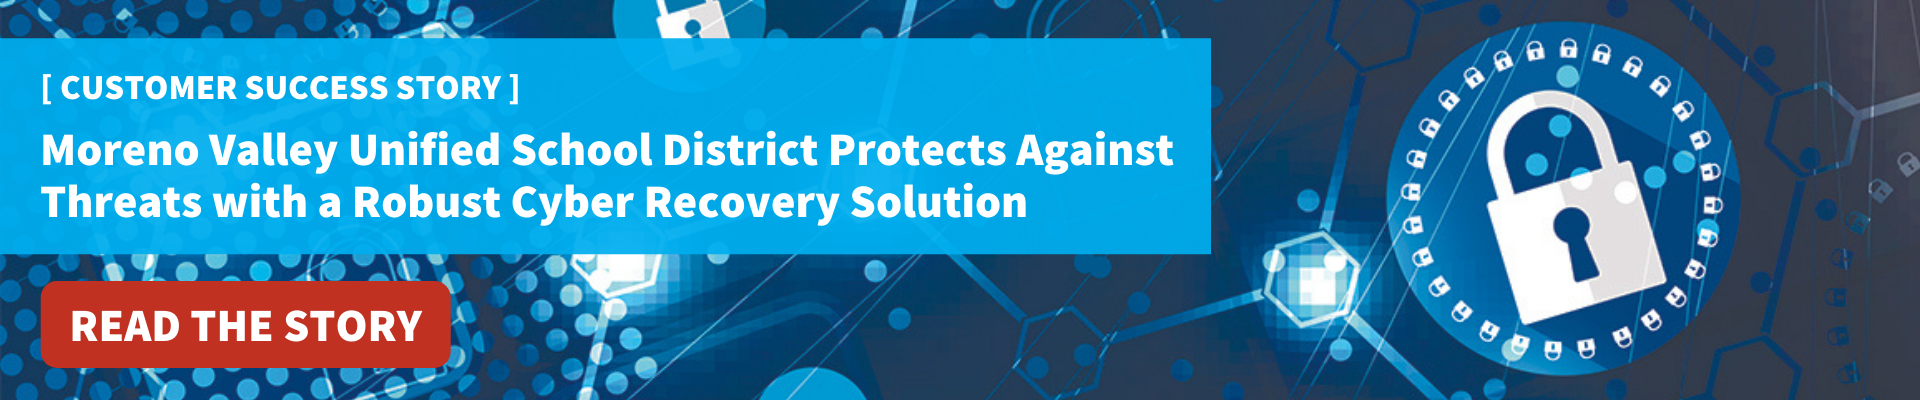 Moreno Valley Unified School District Cyber Recovery Case Study - Read Now